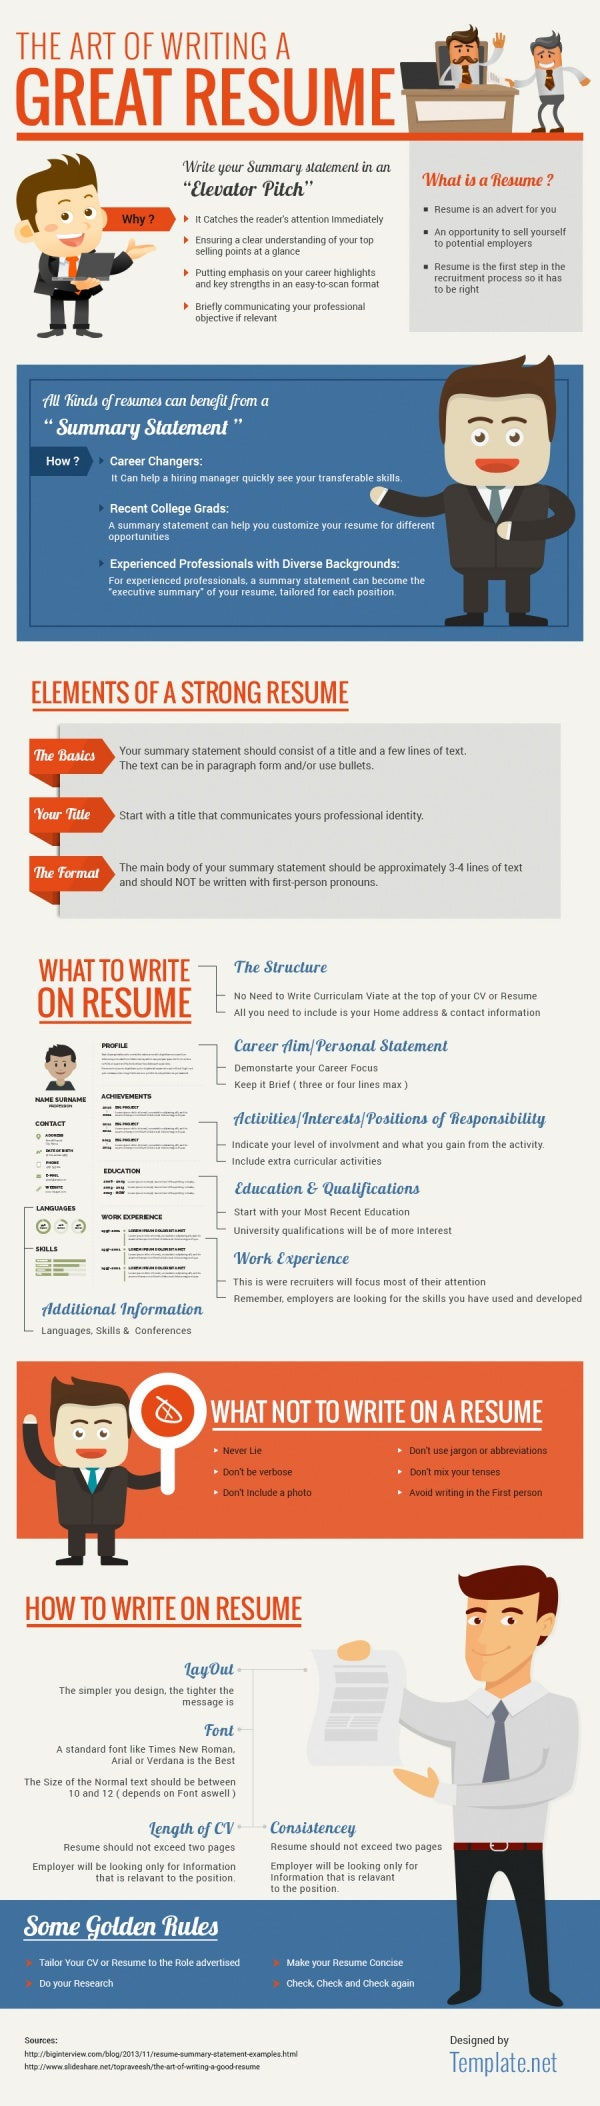 free resume builder websites free resume writing web site resume writer direct free builder com aploon - Quick Resume Builder Free